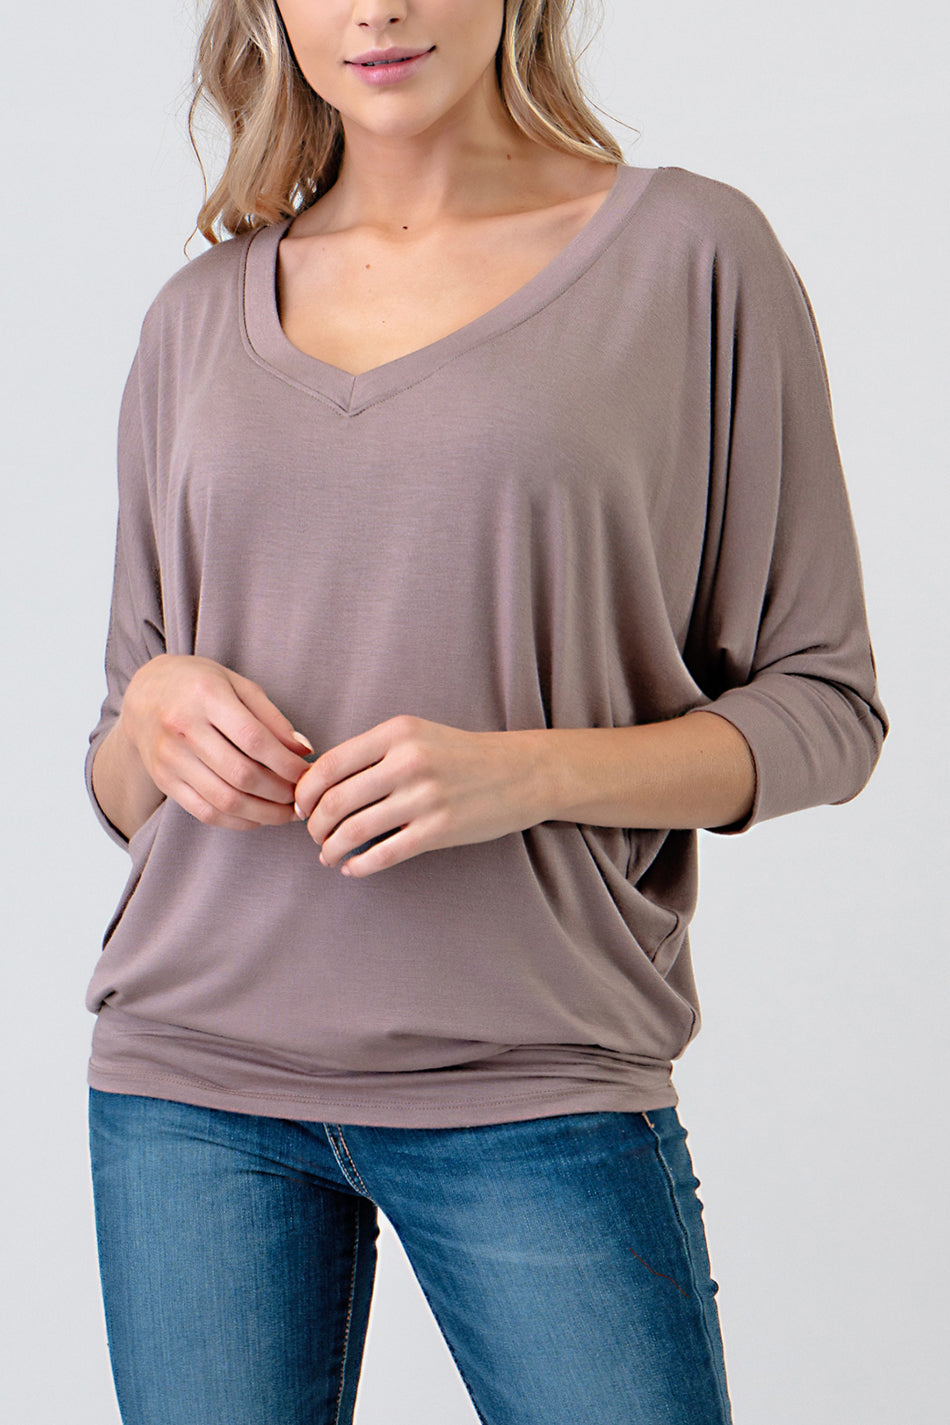 ecological Modal jersey 3/4 Dolman sleeve Top by Natural Life